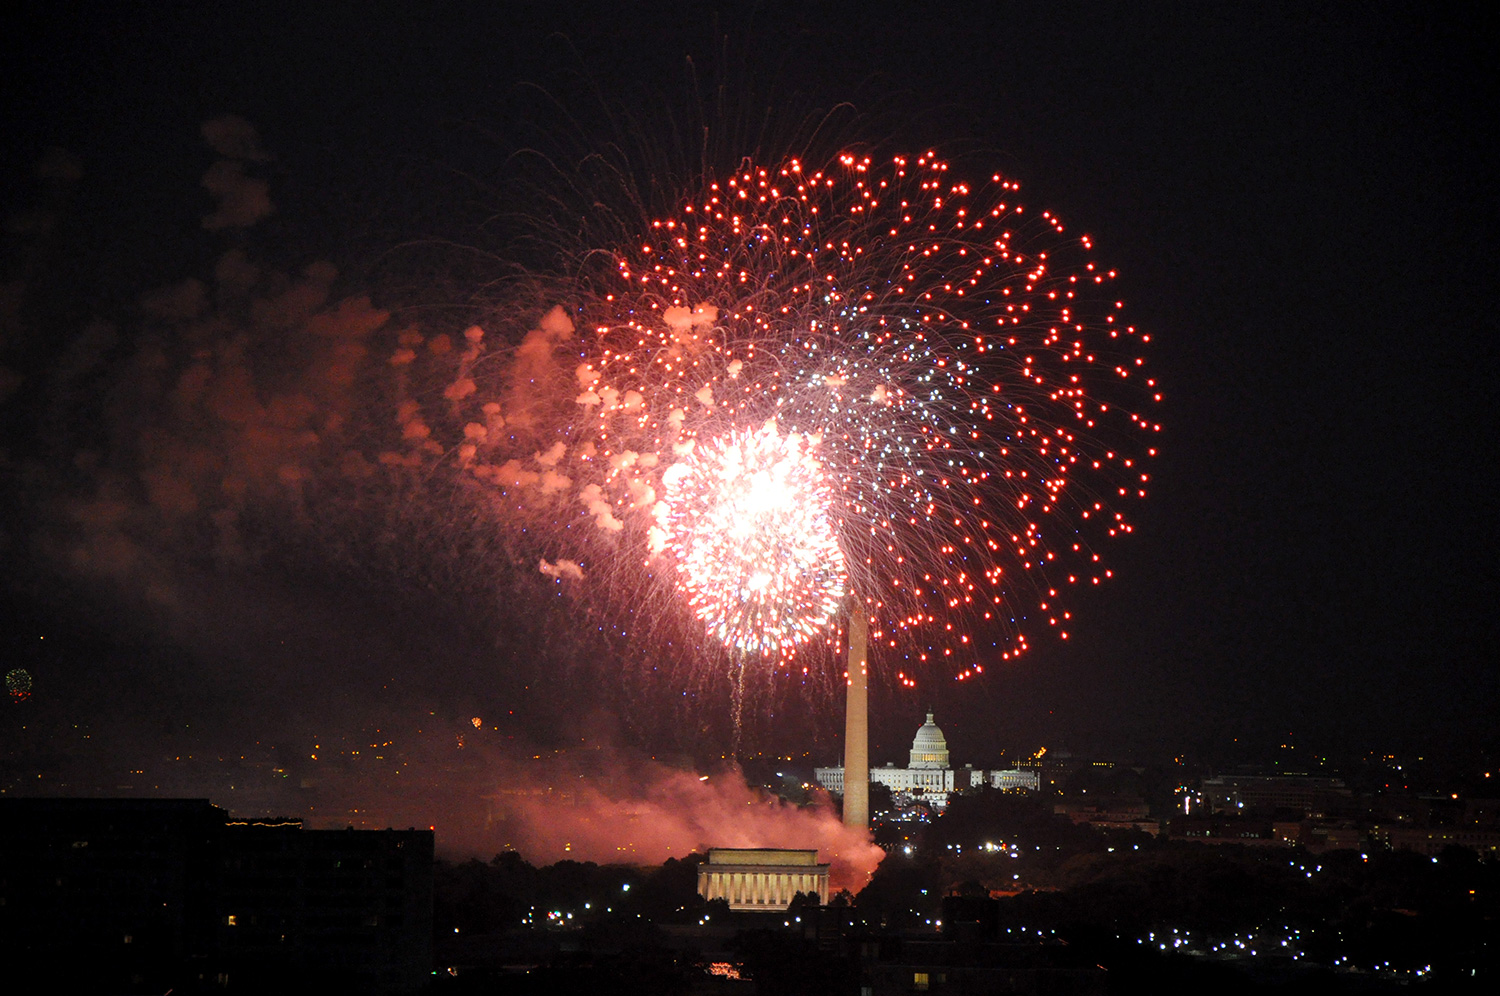 July 4th fireworks over DC from Arlington (2010)